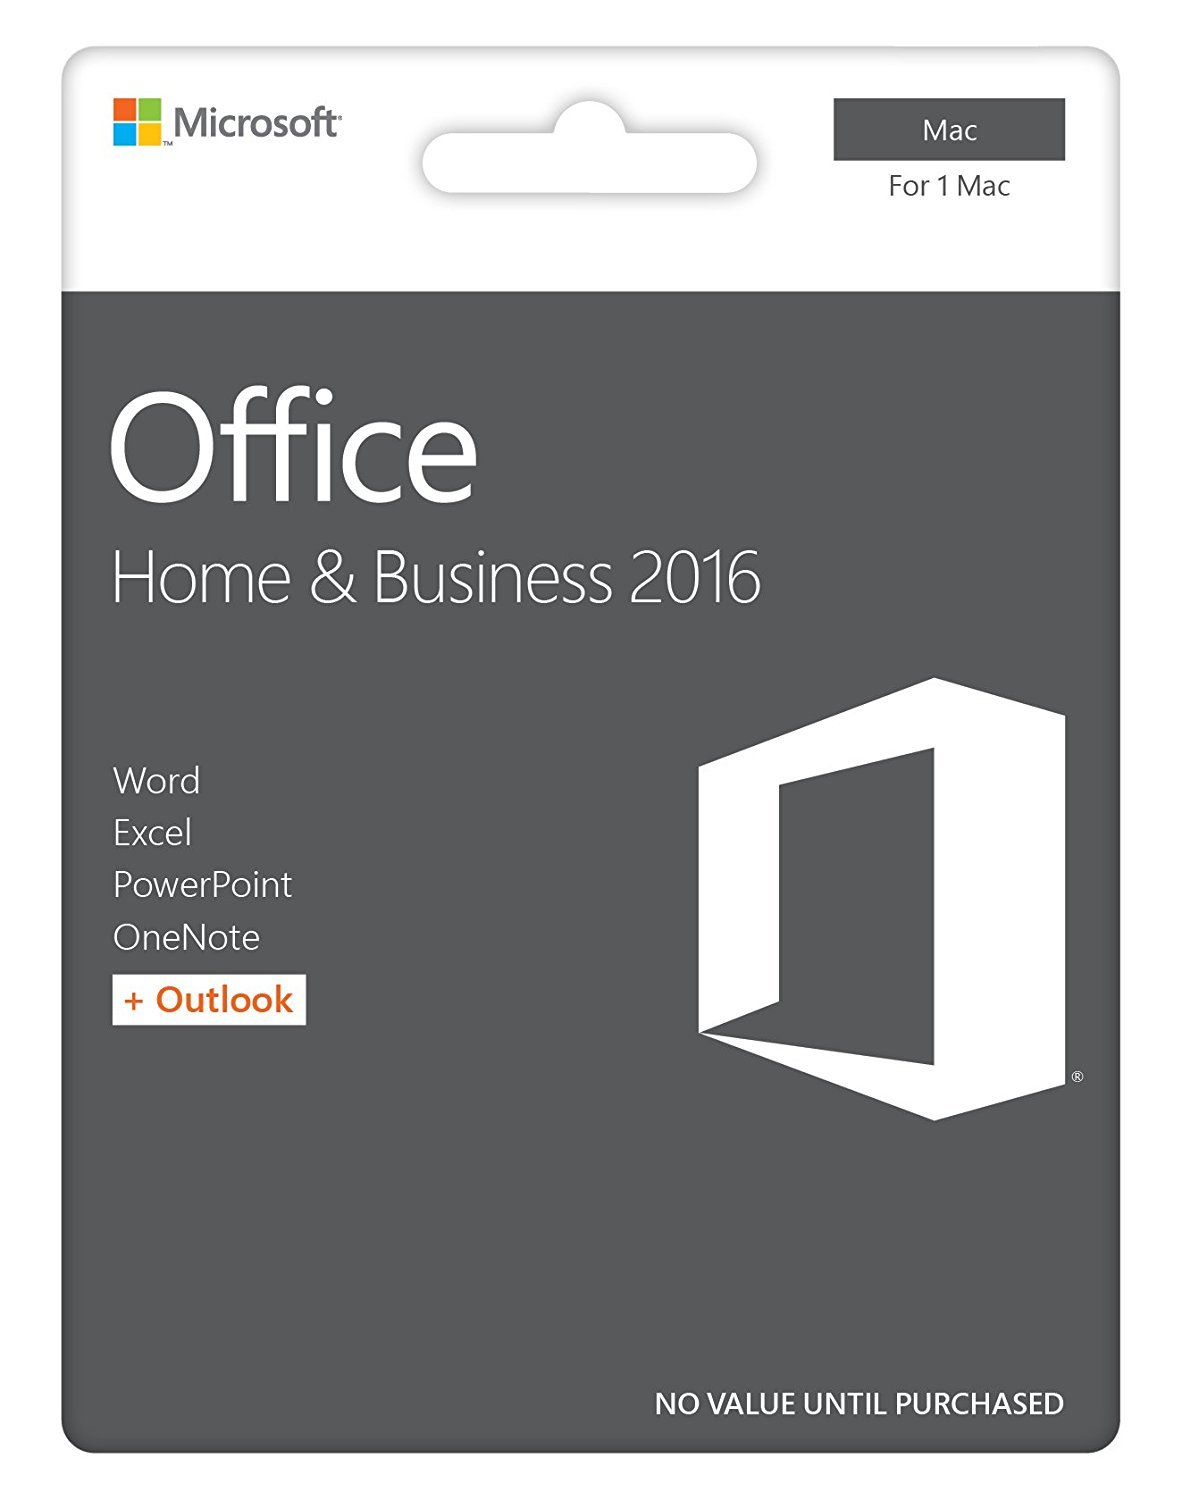 MS Office 2016 Home and Business - New for USA - Boxed Product - for MAC!